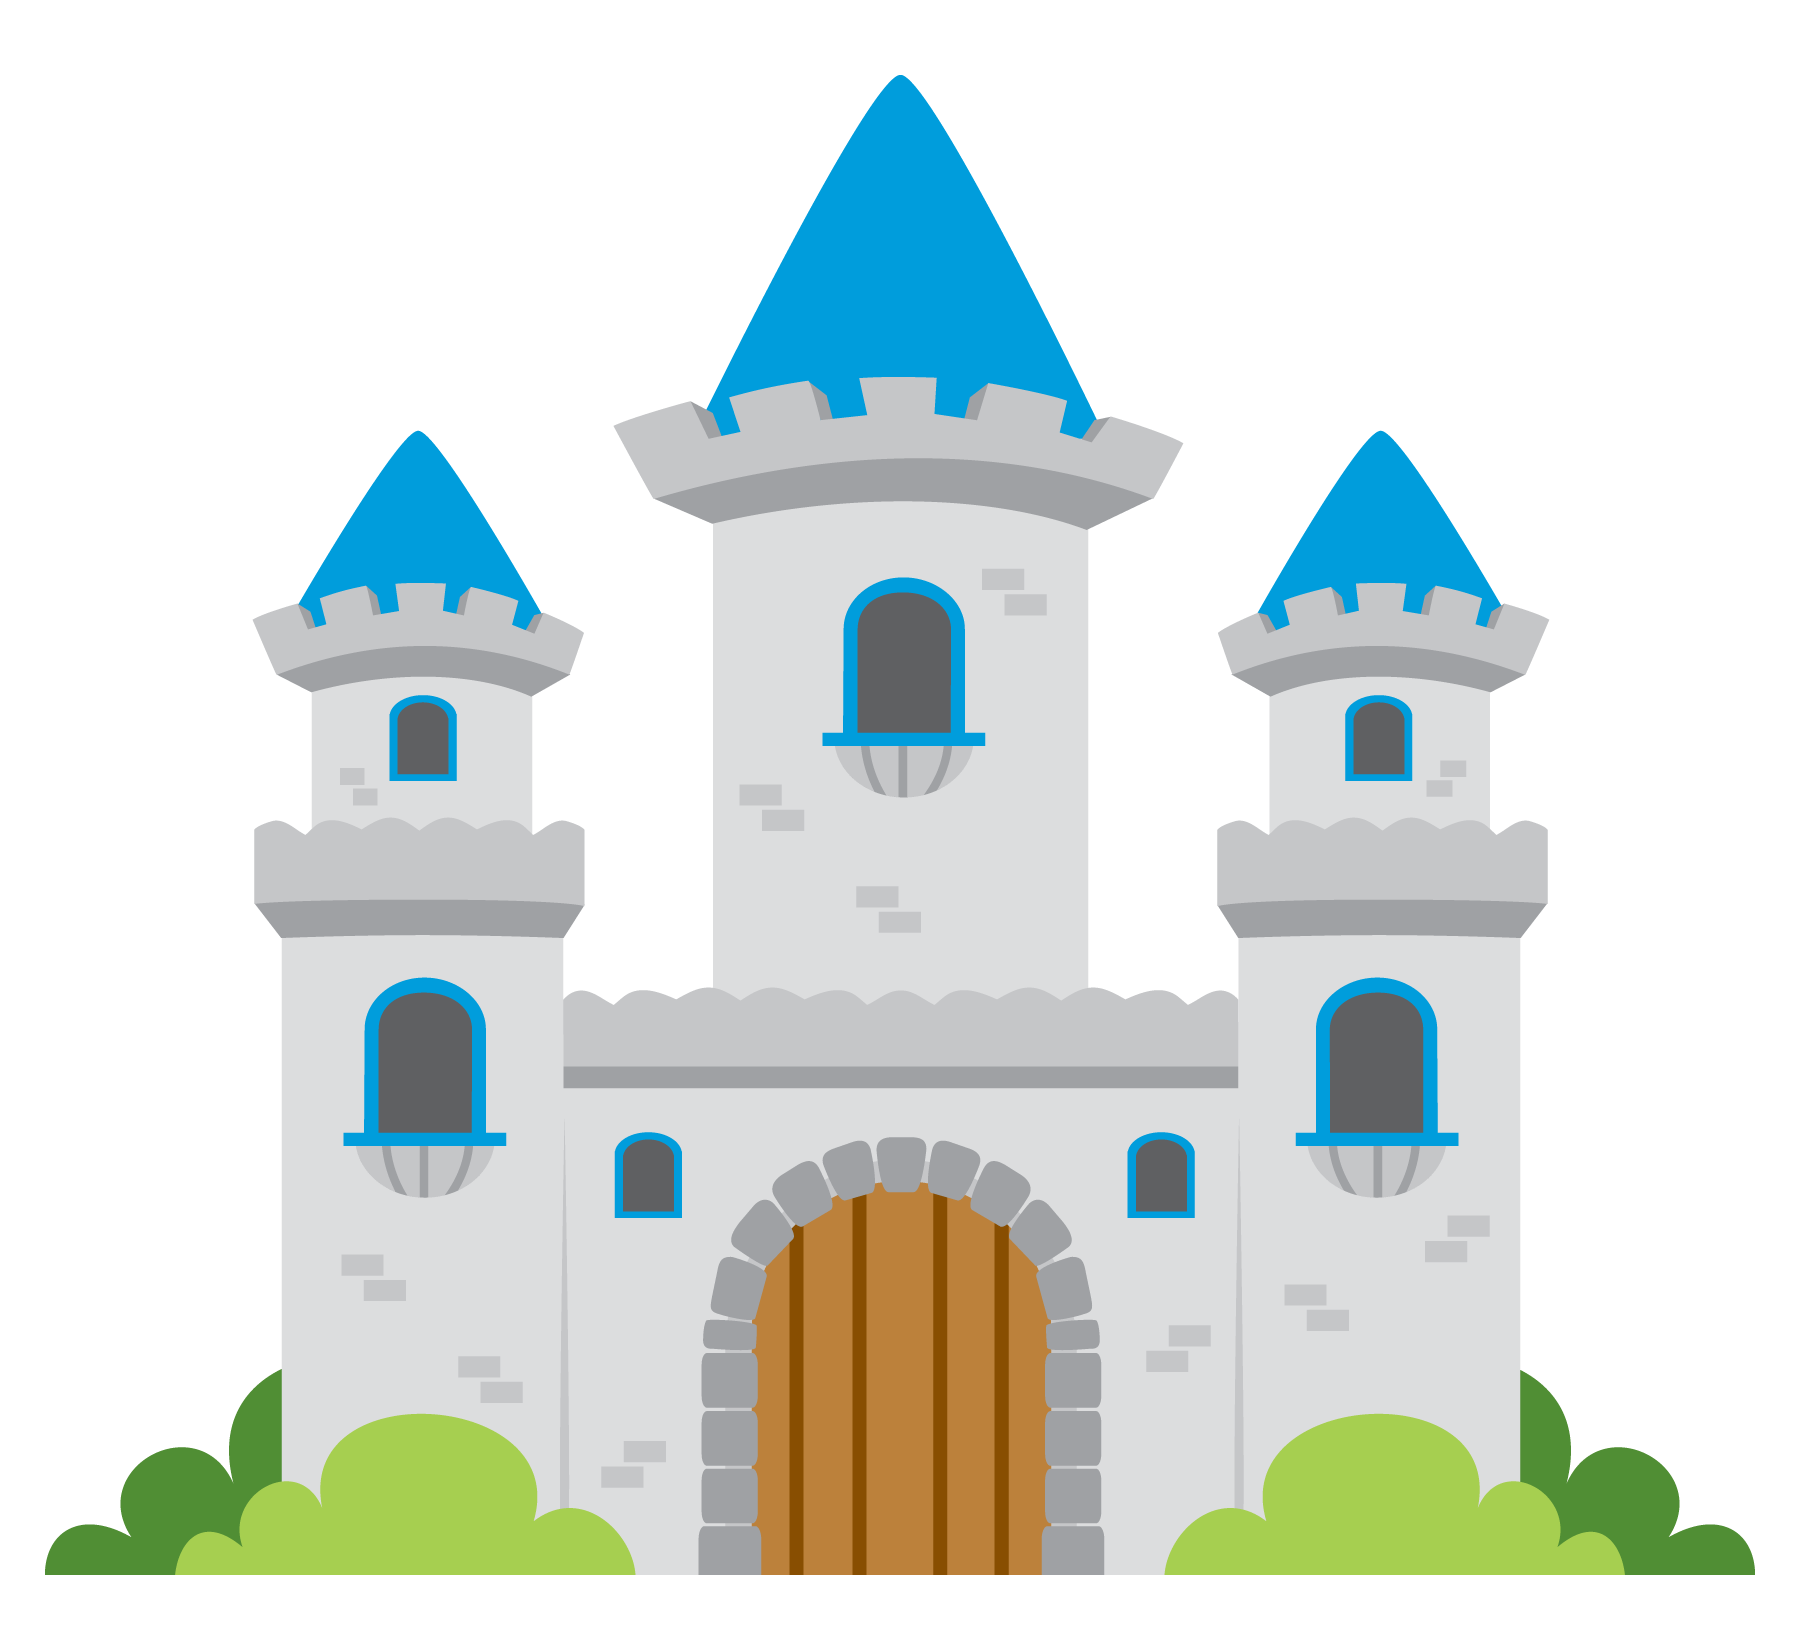 fairy tale castle clip art use these free images for your websites rh pinterest com clip art castles on an island clip art castles on an island